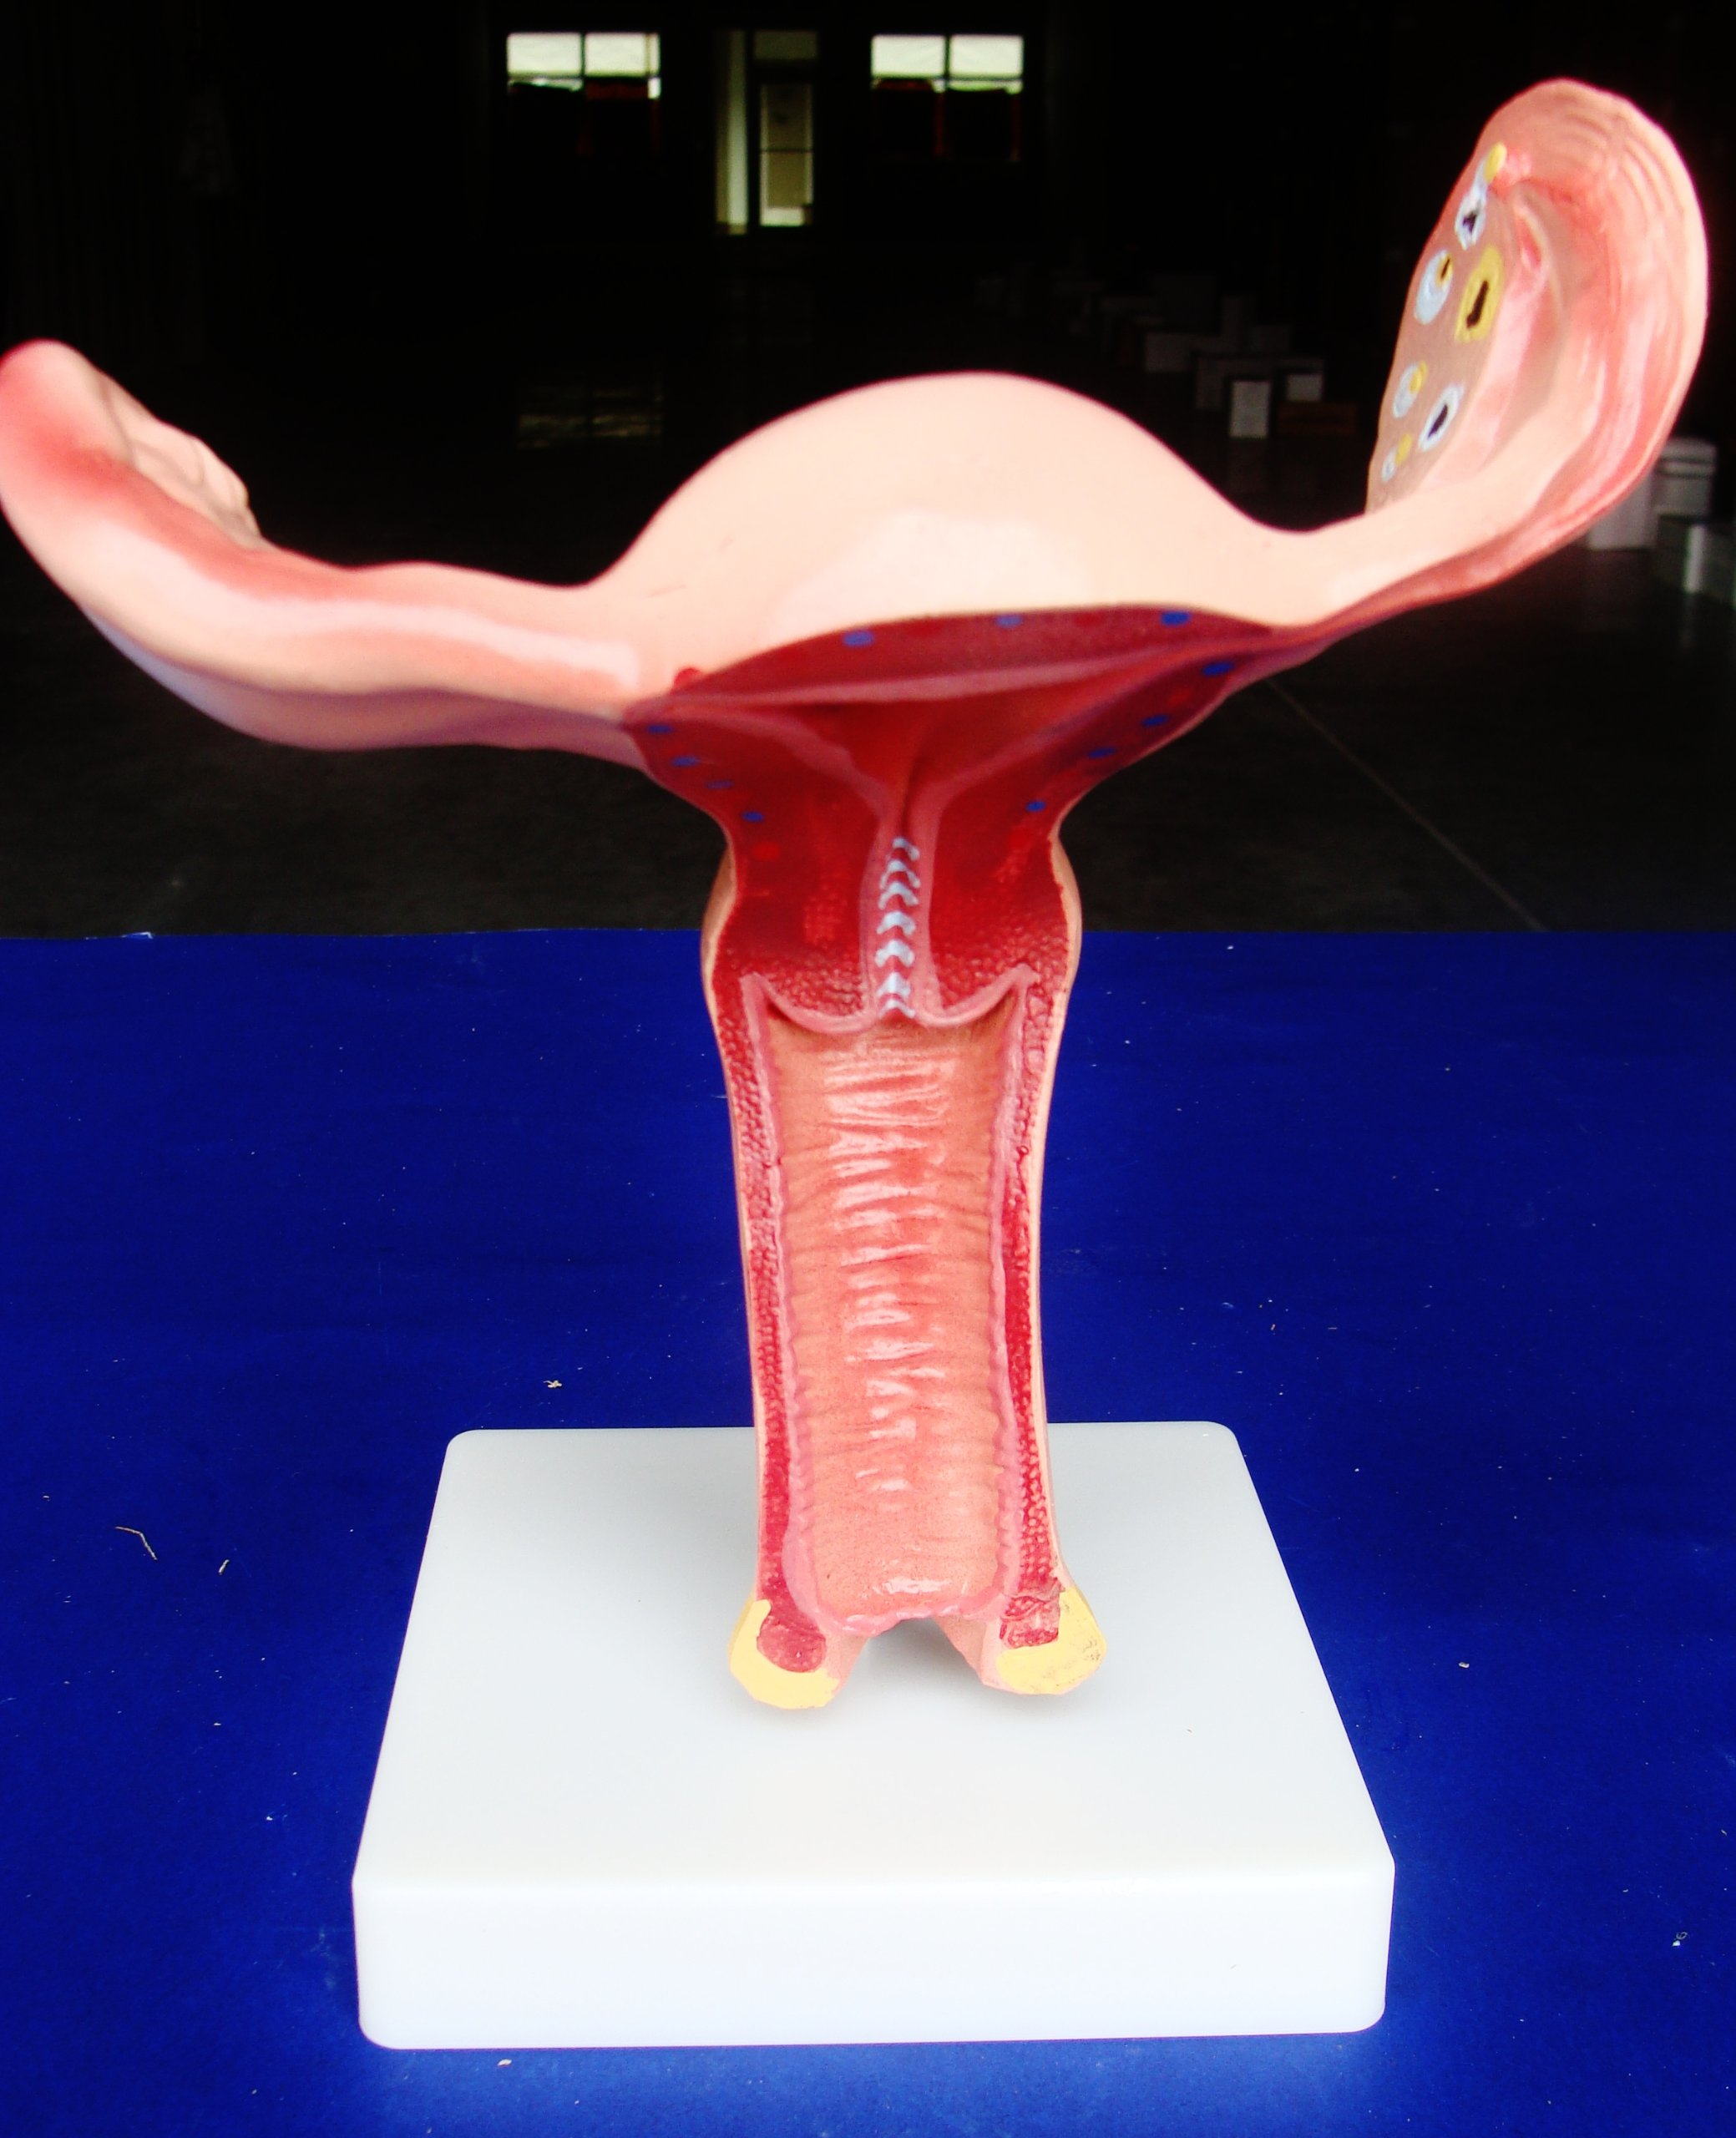 Cheap Uterus Anatomy, find Uterus Anatomy deals on line at Alibaba.com